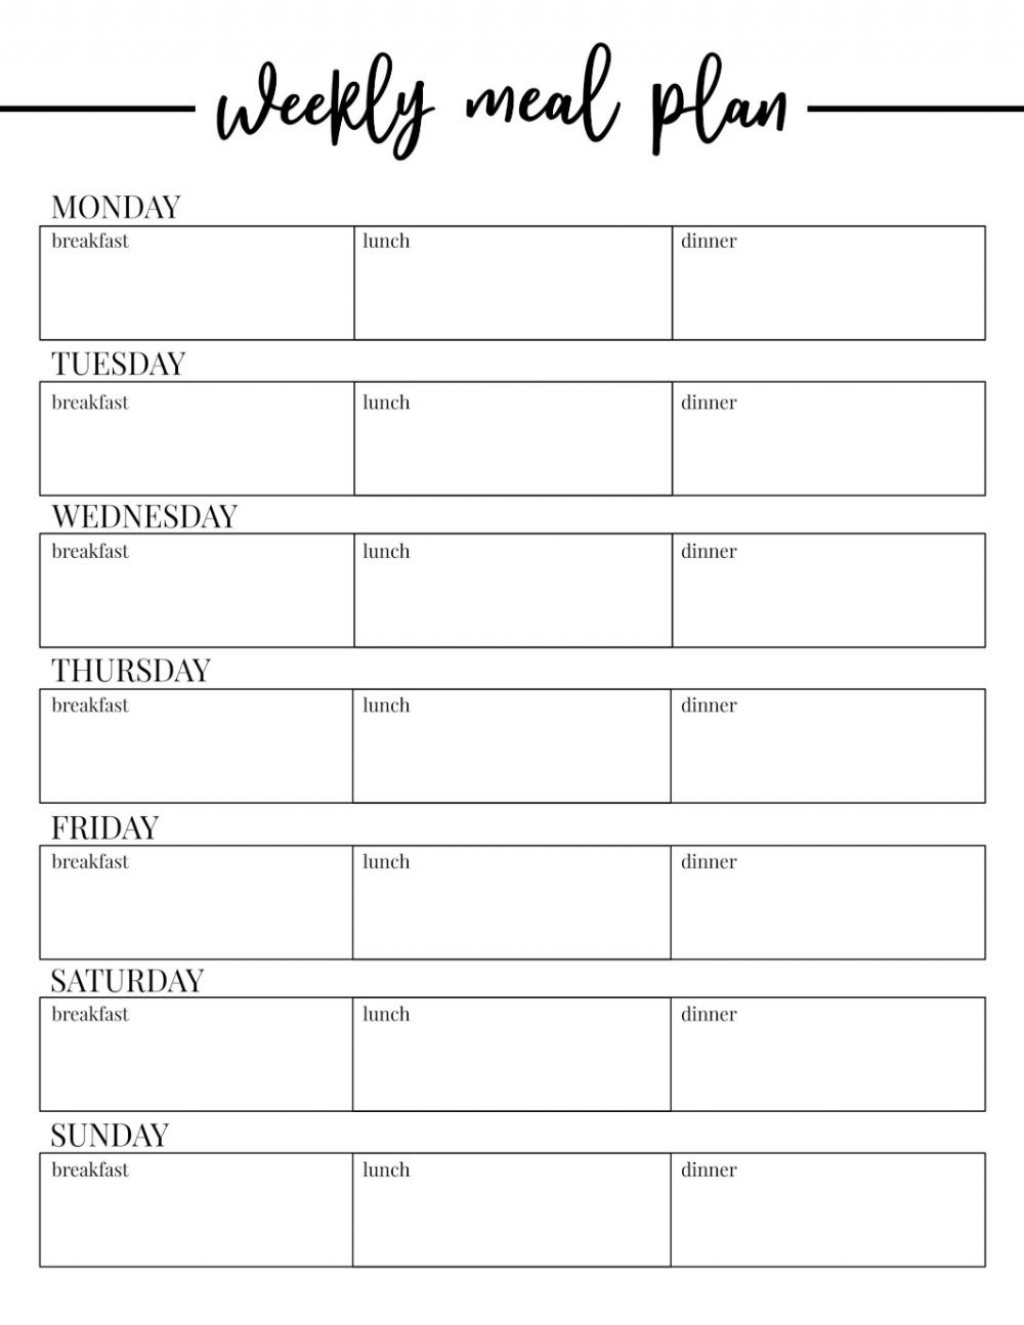 001 Fearsome Free Meal Plan Template Design  Templates Easy Keto Printable Planner For Weight LosLarge